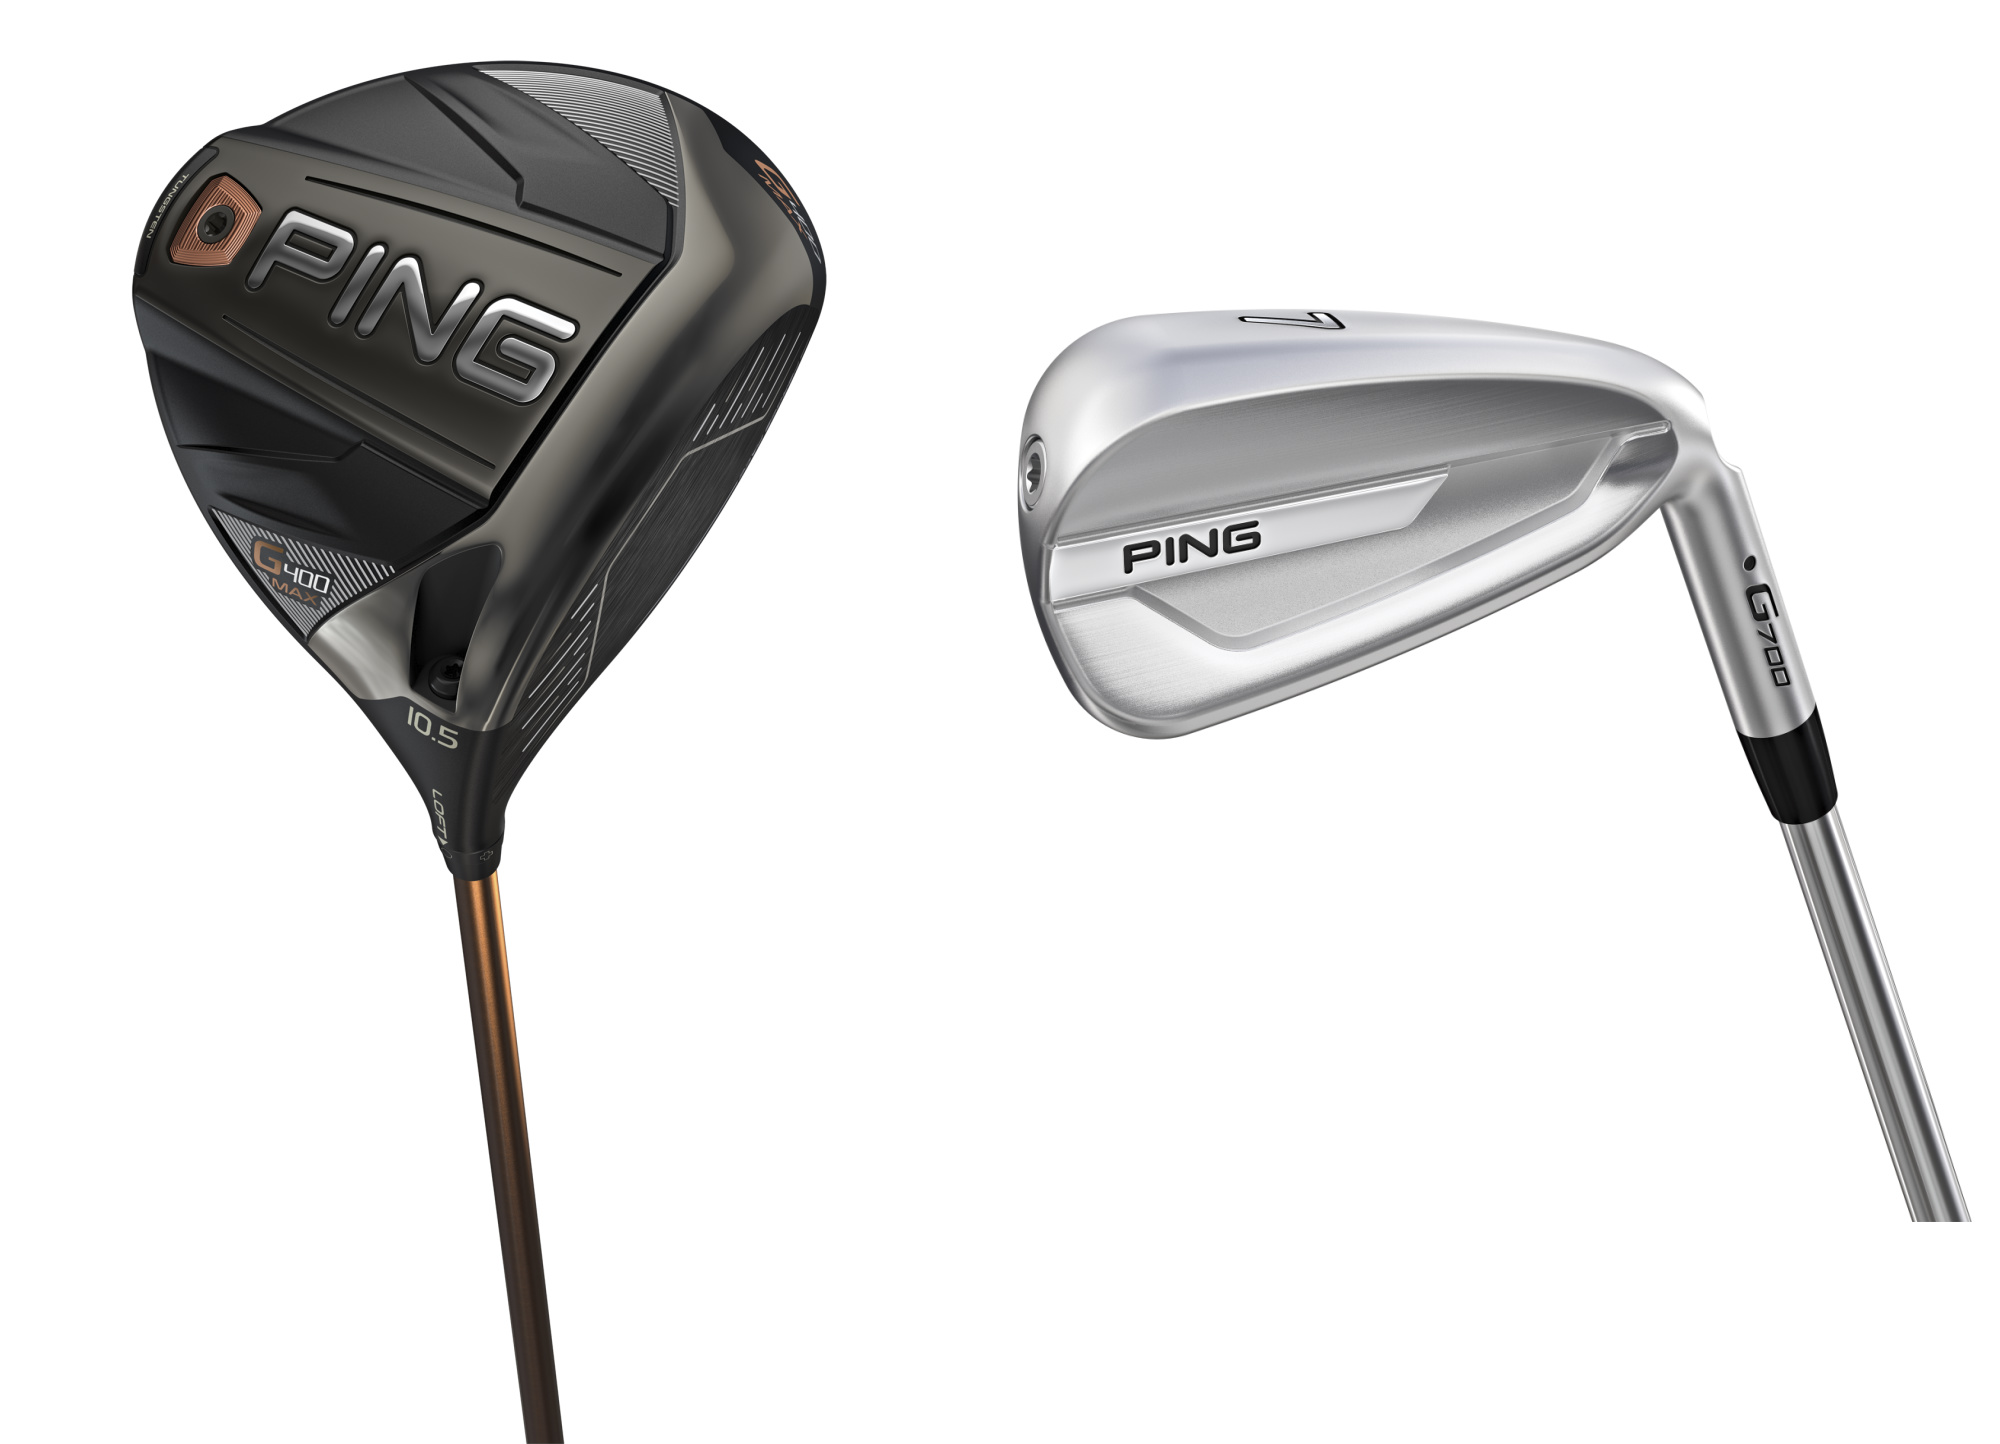 Ping launch g400 max driver g700 irons golfmagic ping has launched its new g400 max driver g700 irons and glide 20 stealth wedges for 2018 nvjuhfo Gallery